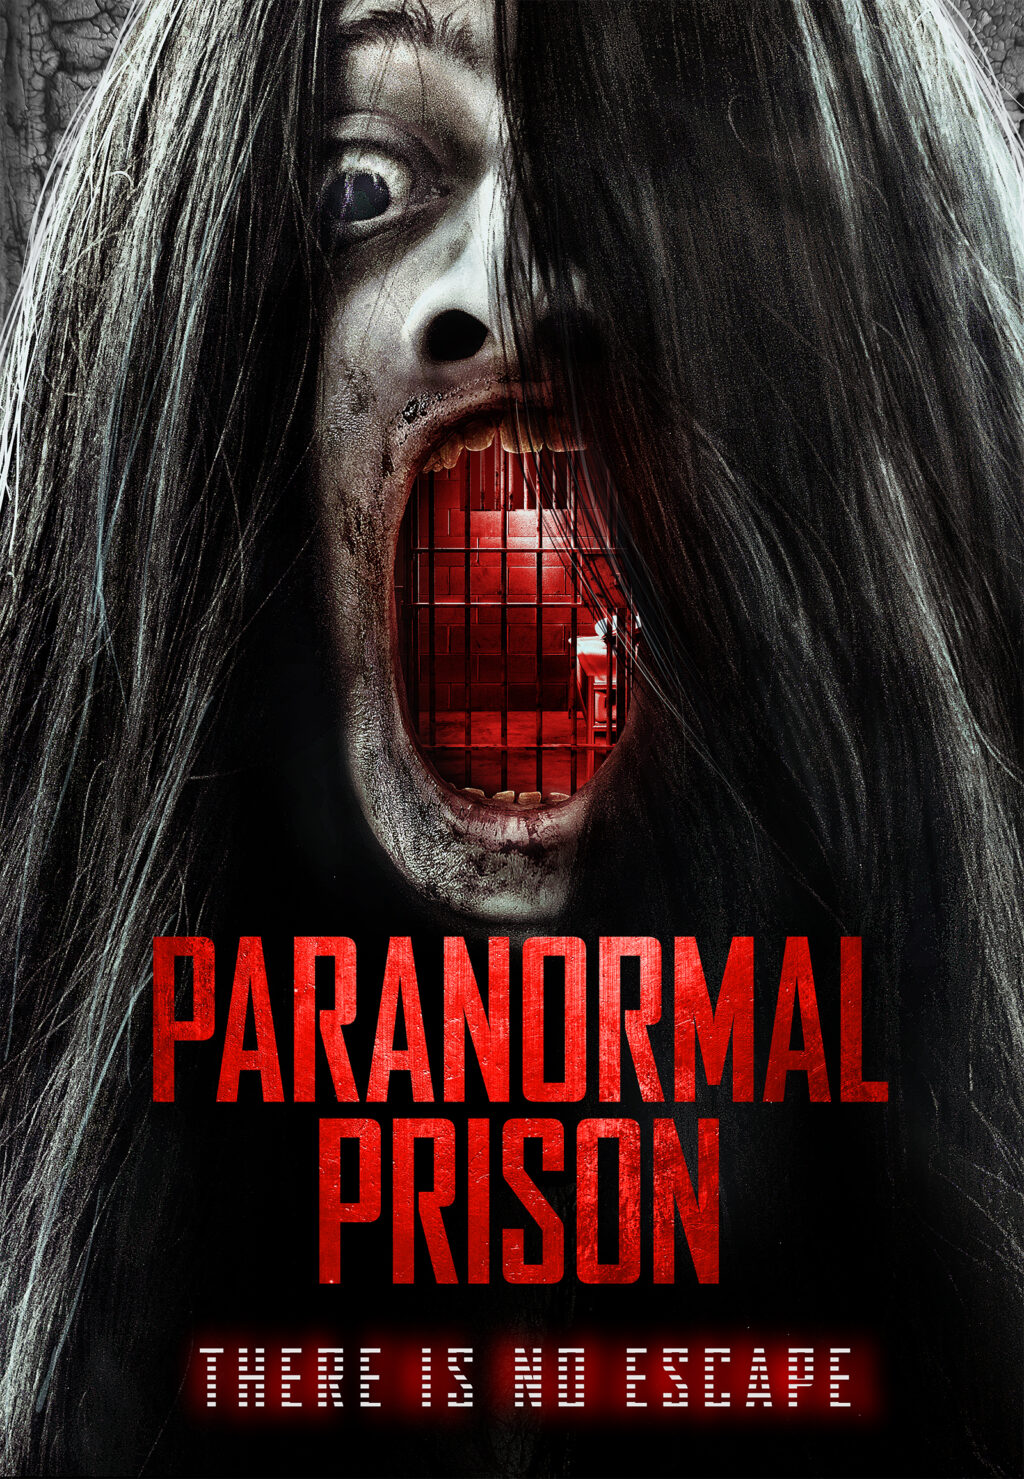 ParanormalPrison Keyart FINAL v2 1 1024x1479 - Trailer: Ghost Hunters on Lockdown with Terror in PARANORMAL PRISON Materializing February 19th